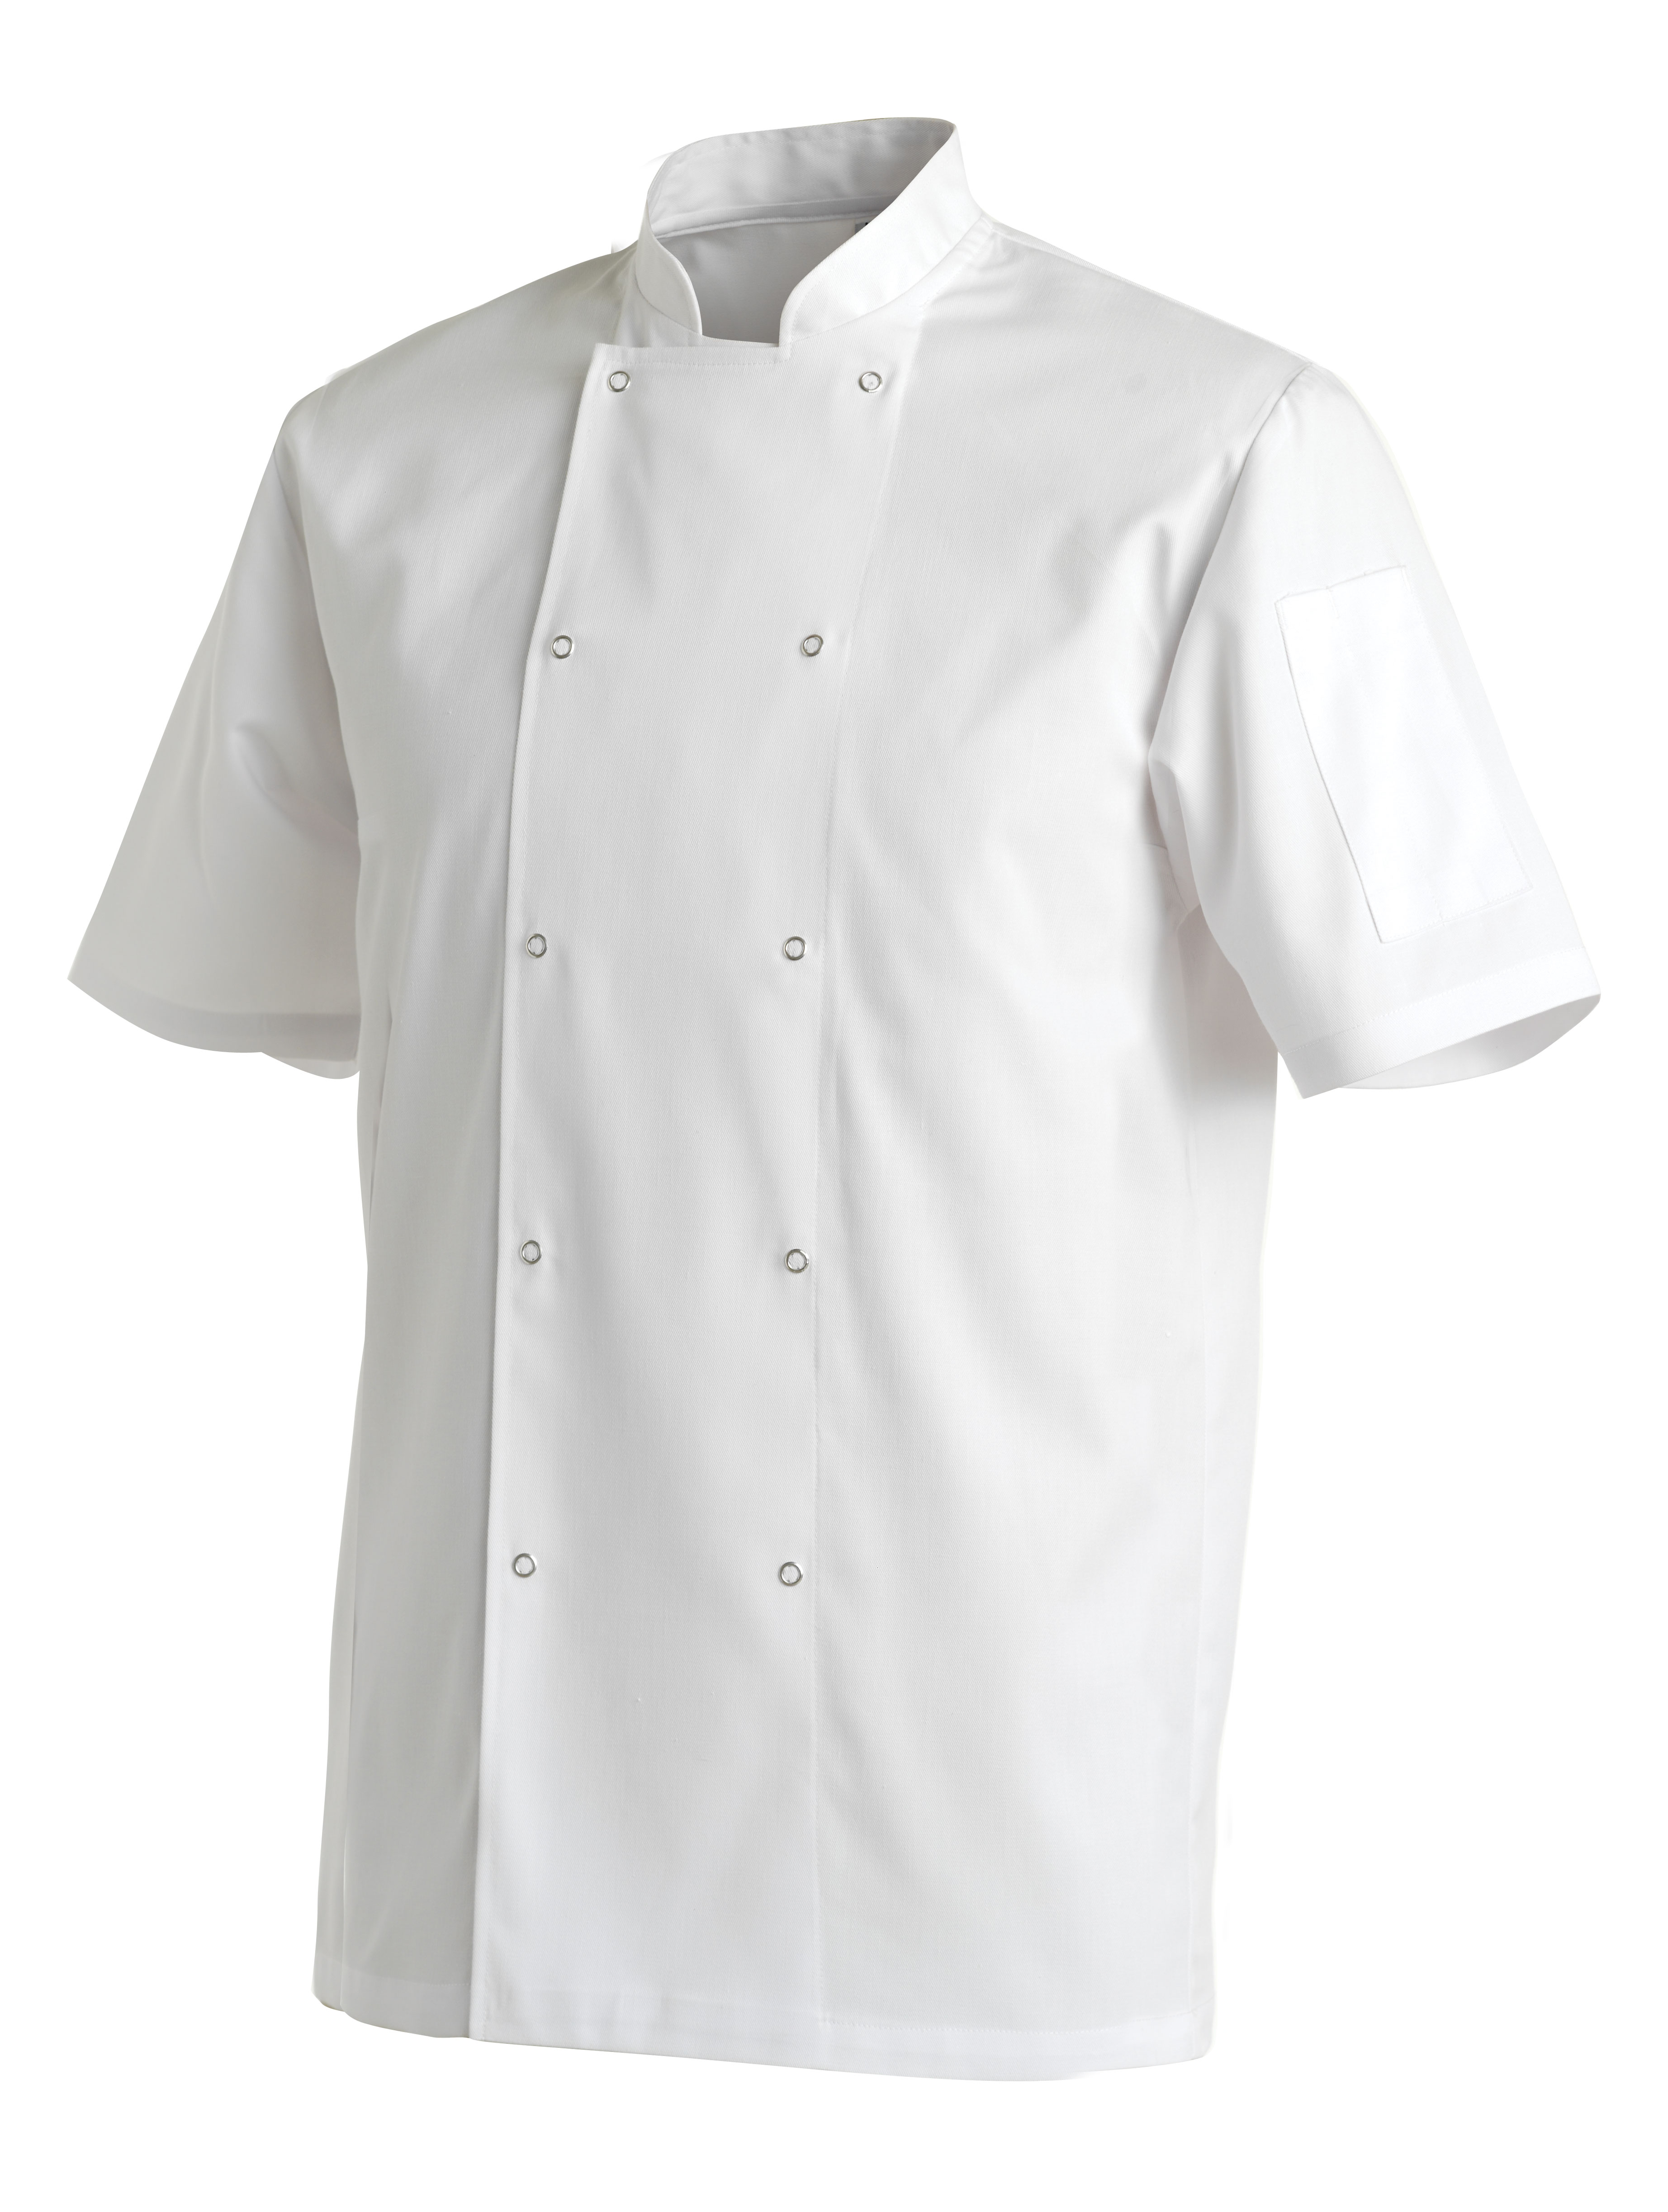 CHEFS UNIFORM JACKET LAUNDRY COAT SHORT - XX LARGE